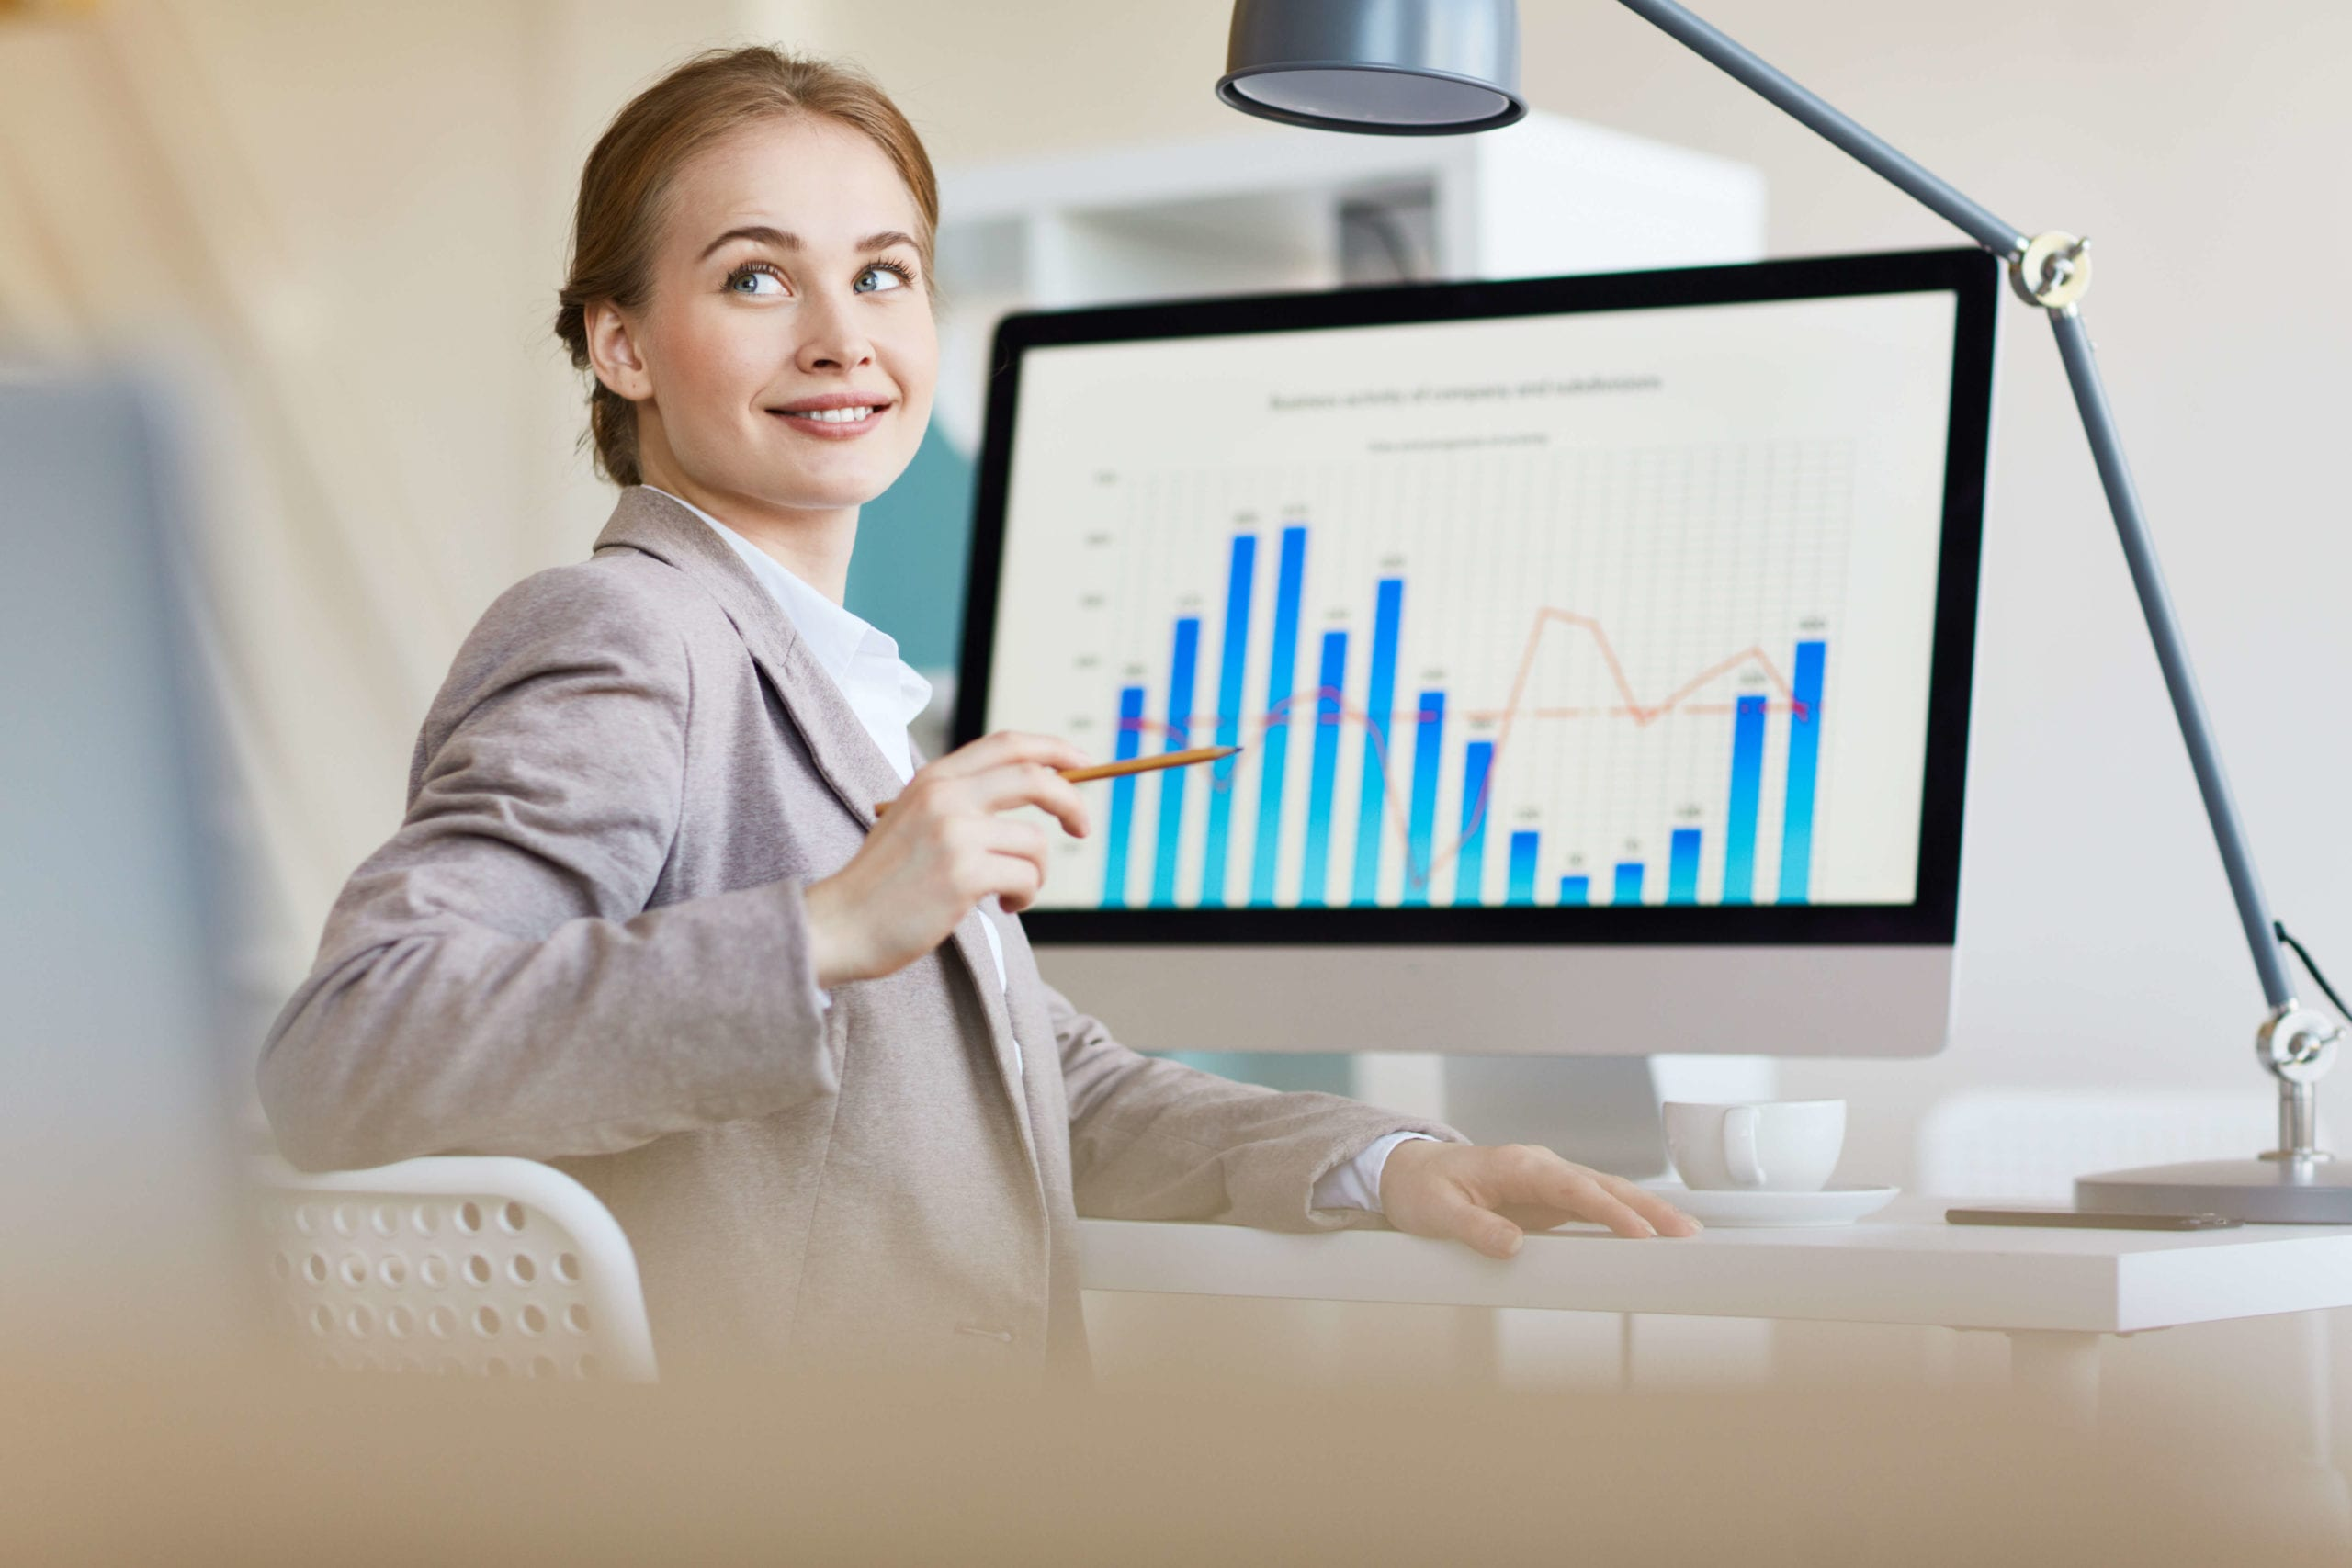 What is BCG Gamma? This image shows a woman in a suit looking at a bar chart on a computer.